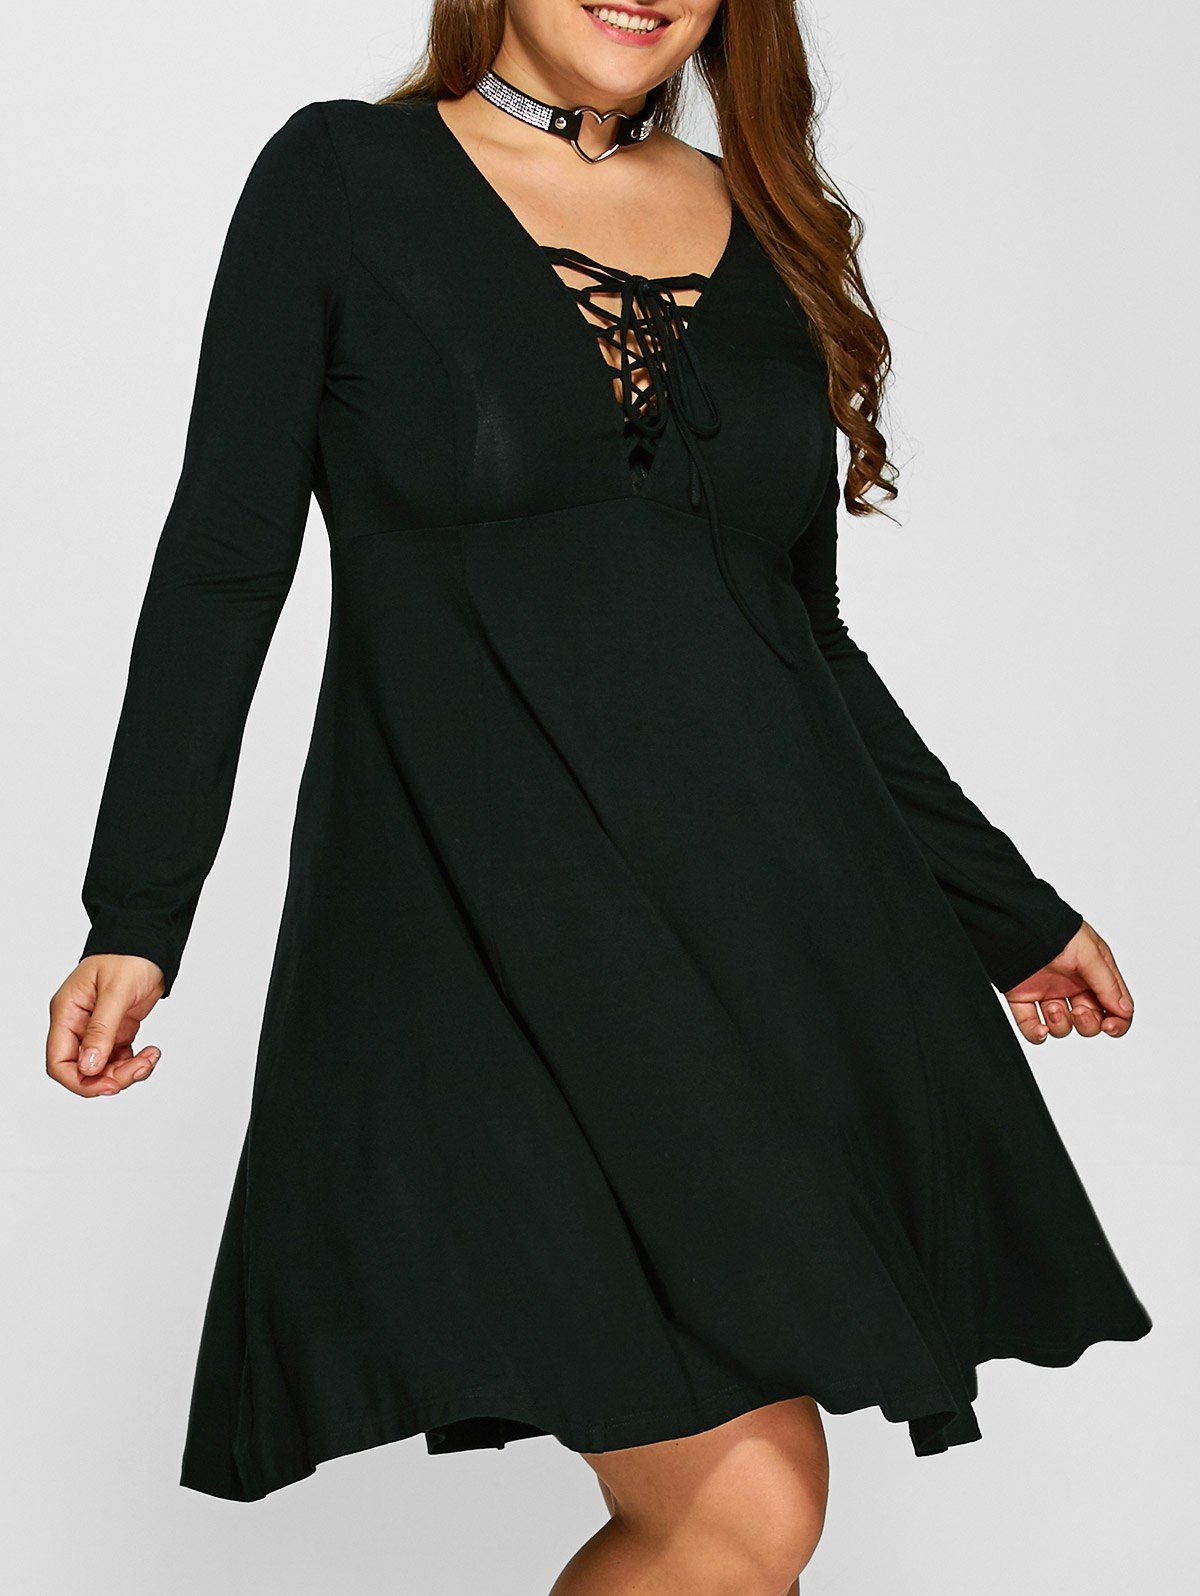 7efc1a30b14 Plus Size Lace-Up Empire Waist Slimming Dress in Black